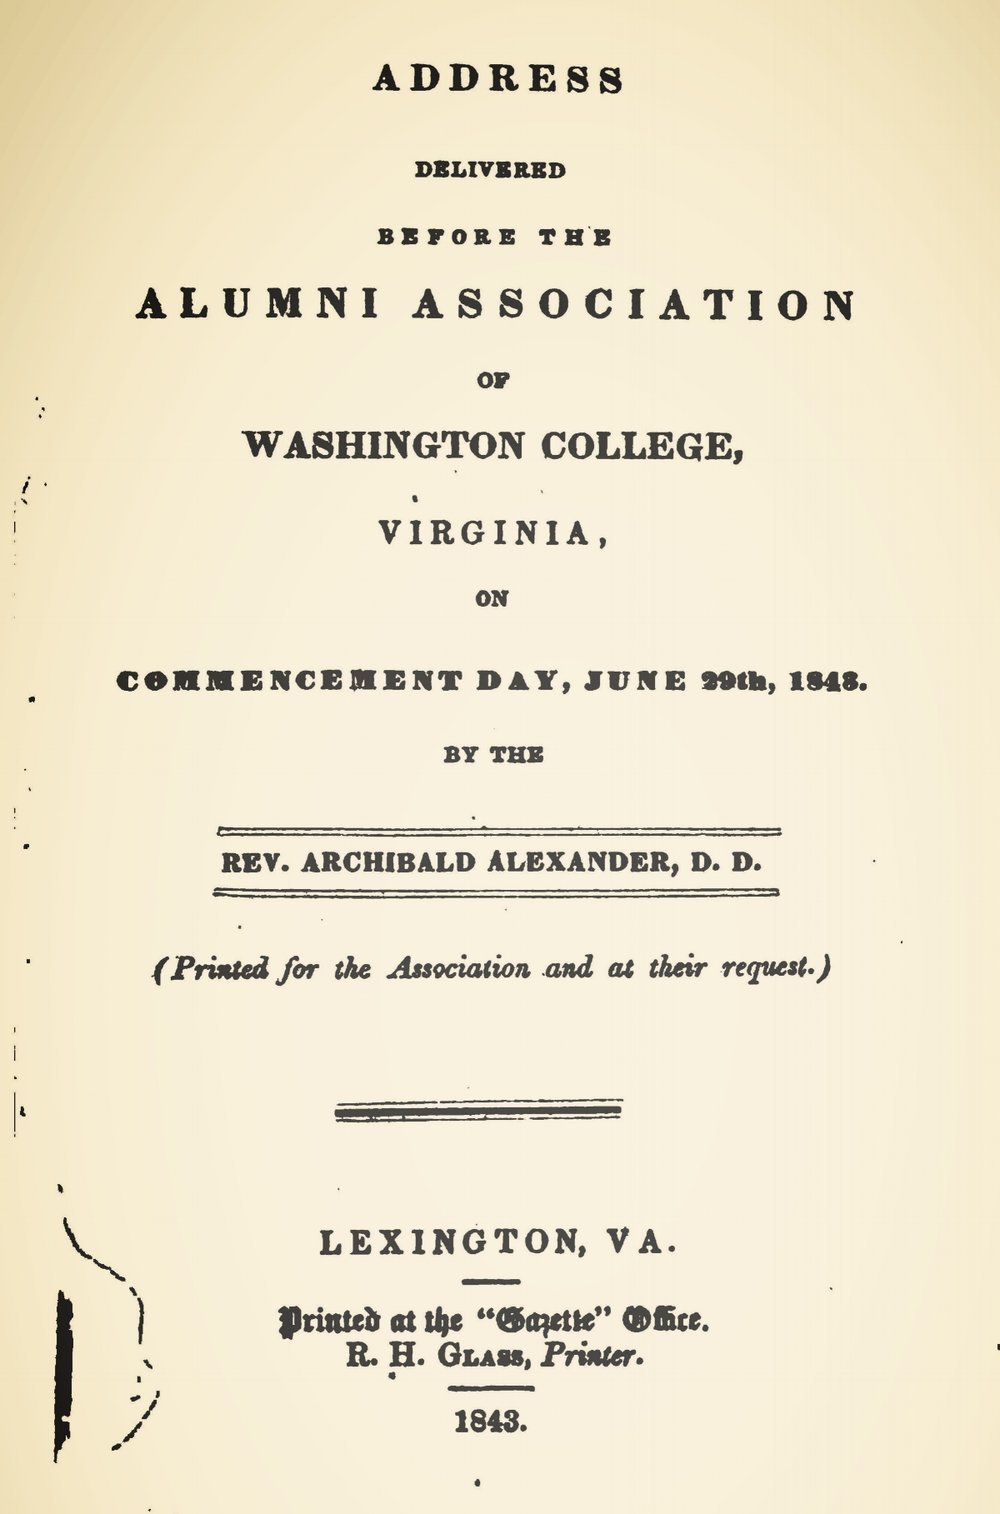 Alexander, Archibald, Address Delivered Before the Alumni Association of Washington College Title Page.jpg